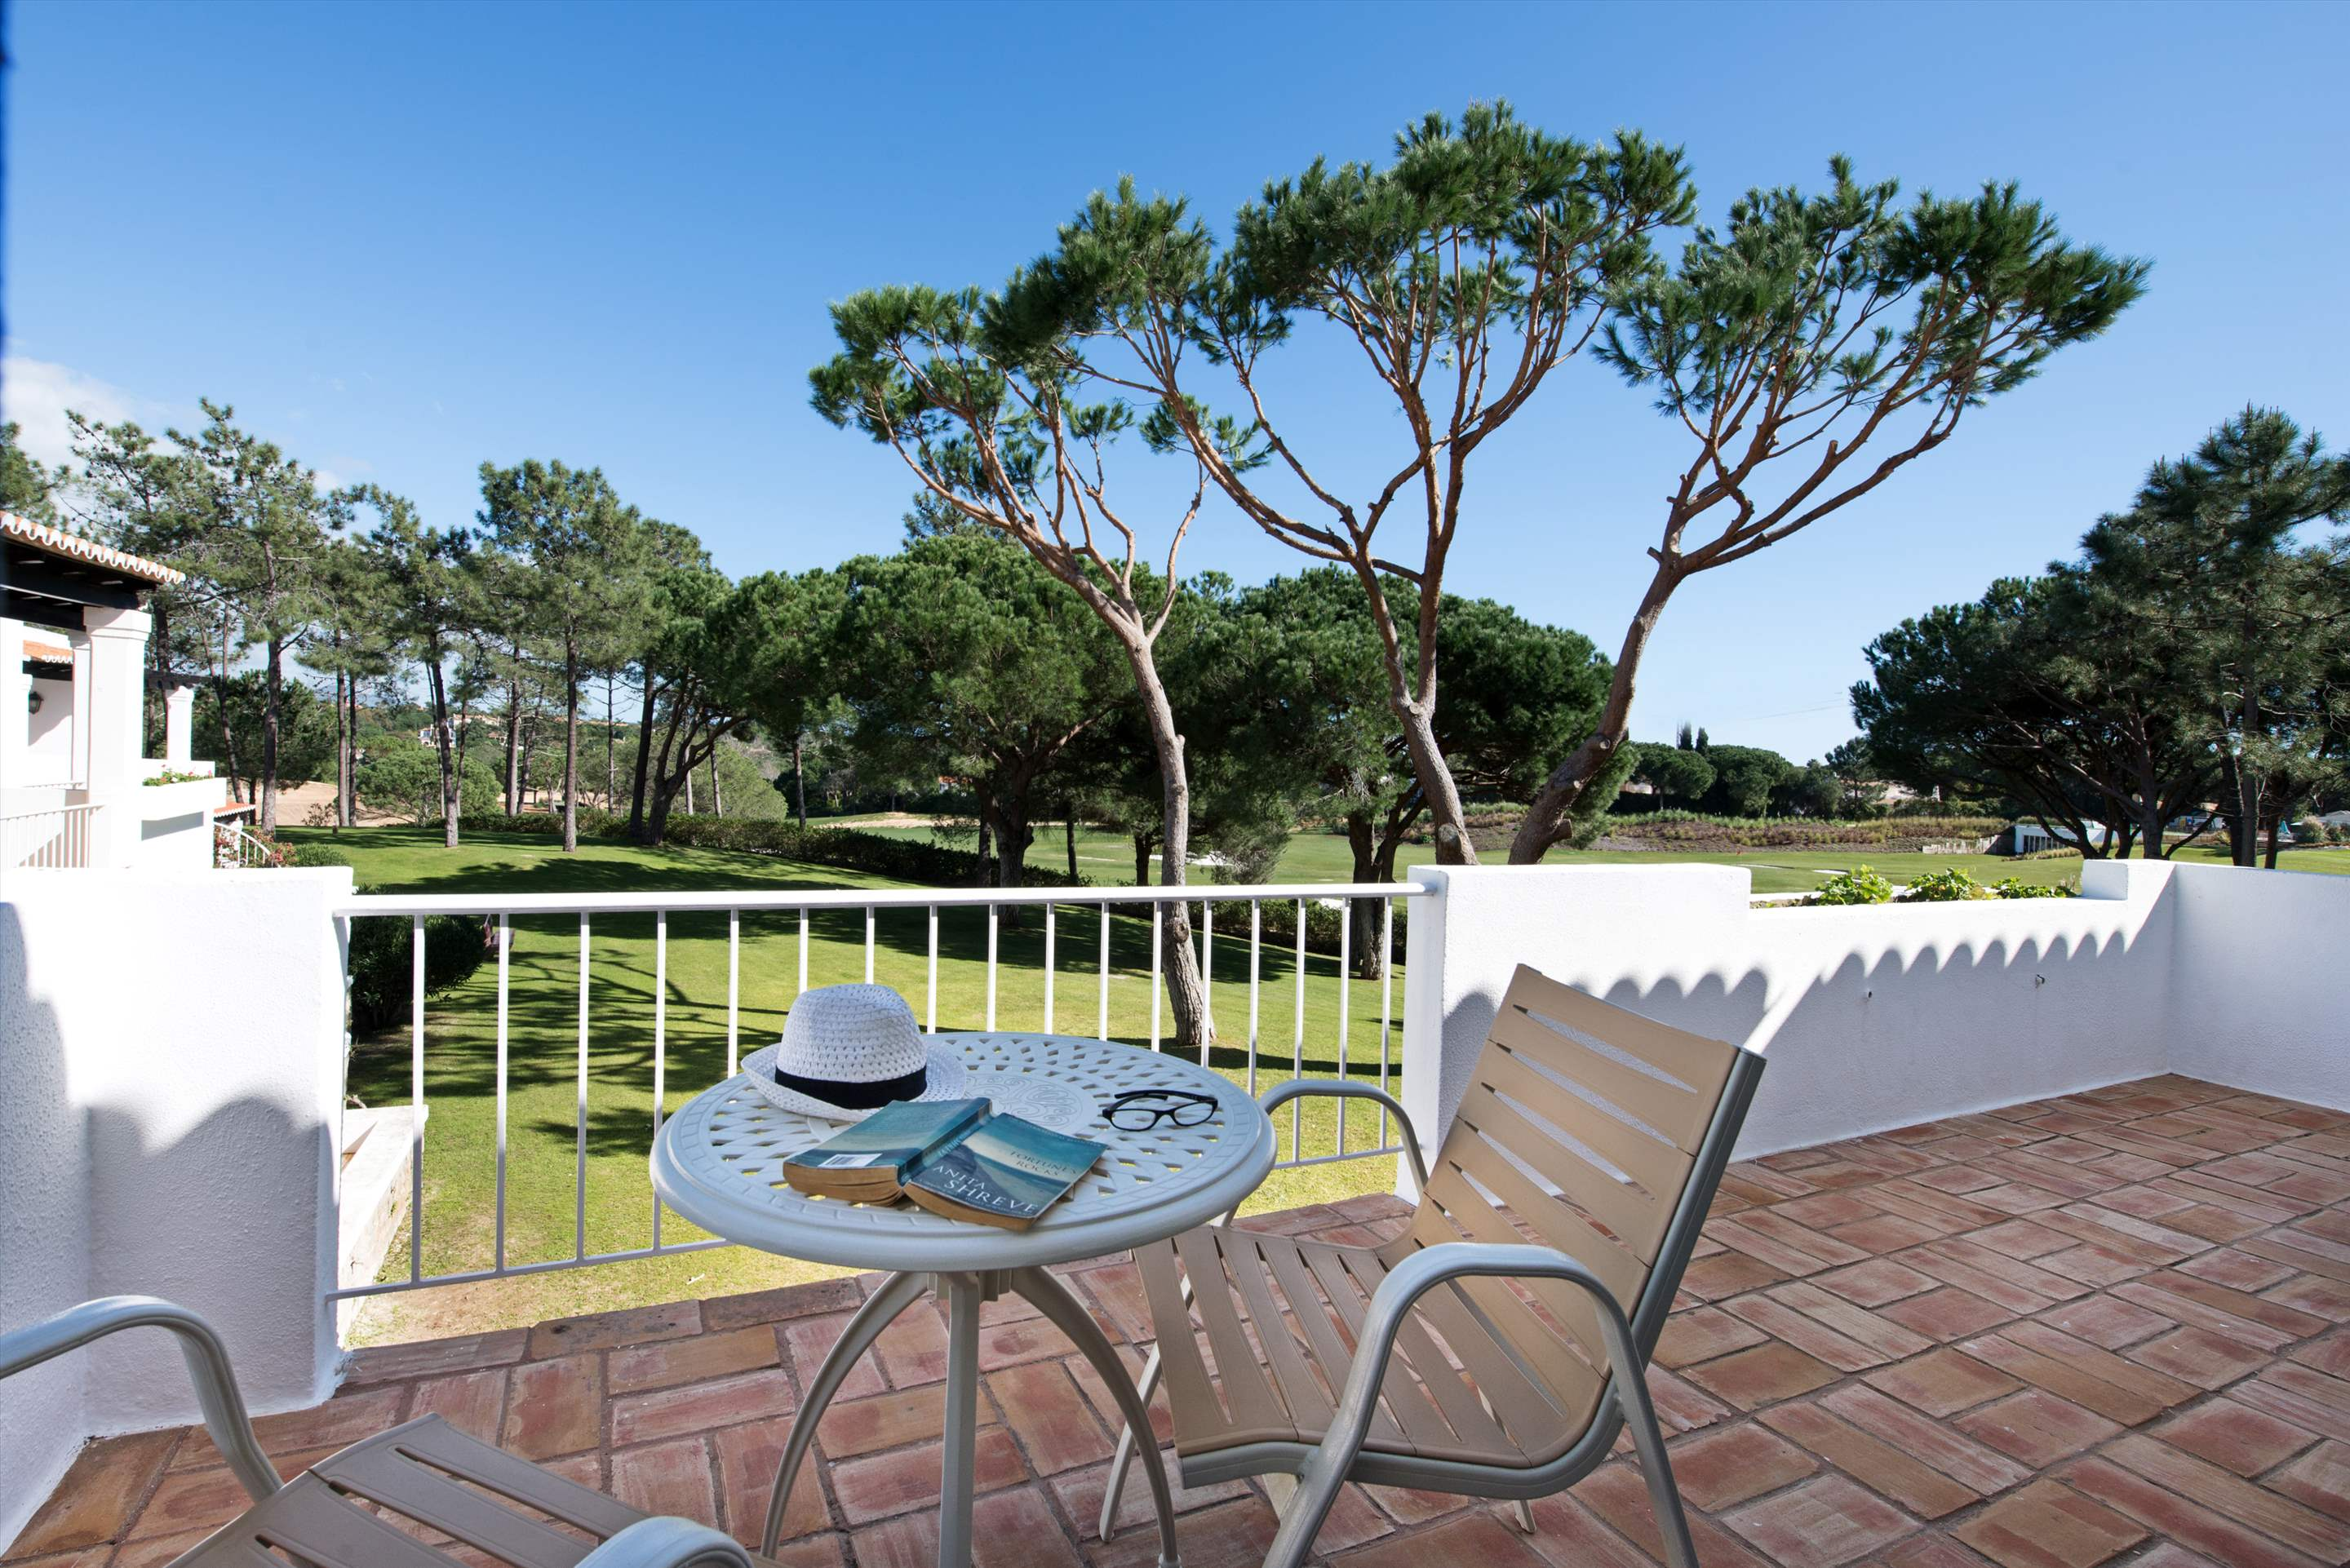 Four Seasons Country Club 1 bed, Superior - Sunday Arrival, 1 bedroom apartment in Four Seasons Country Club, Algarve Photo #8